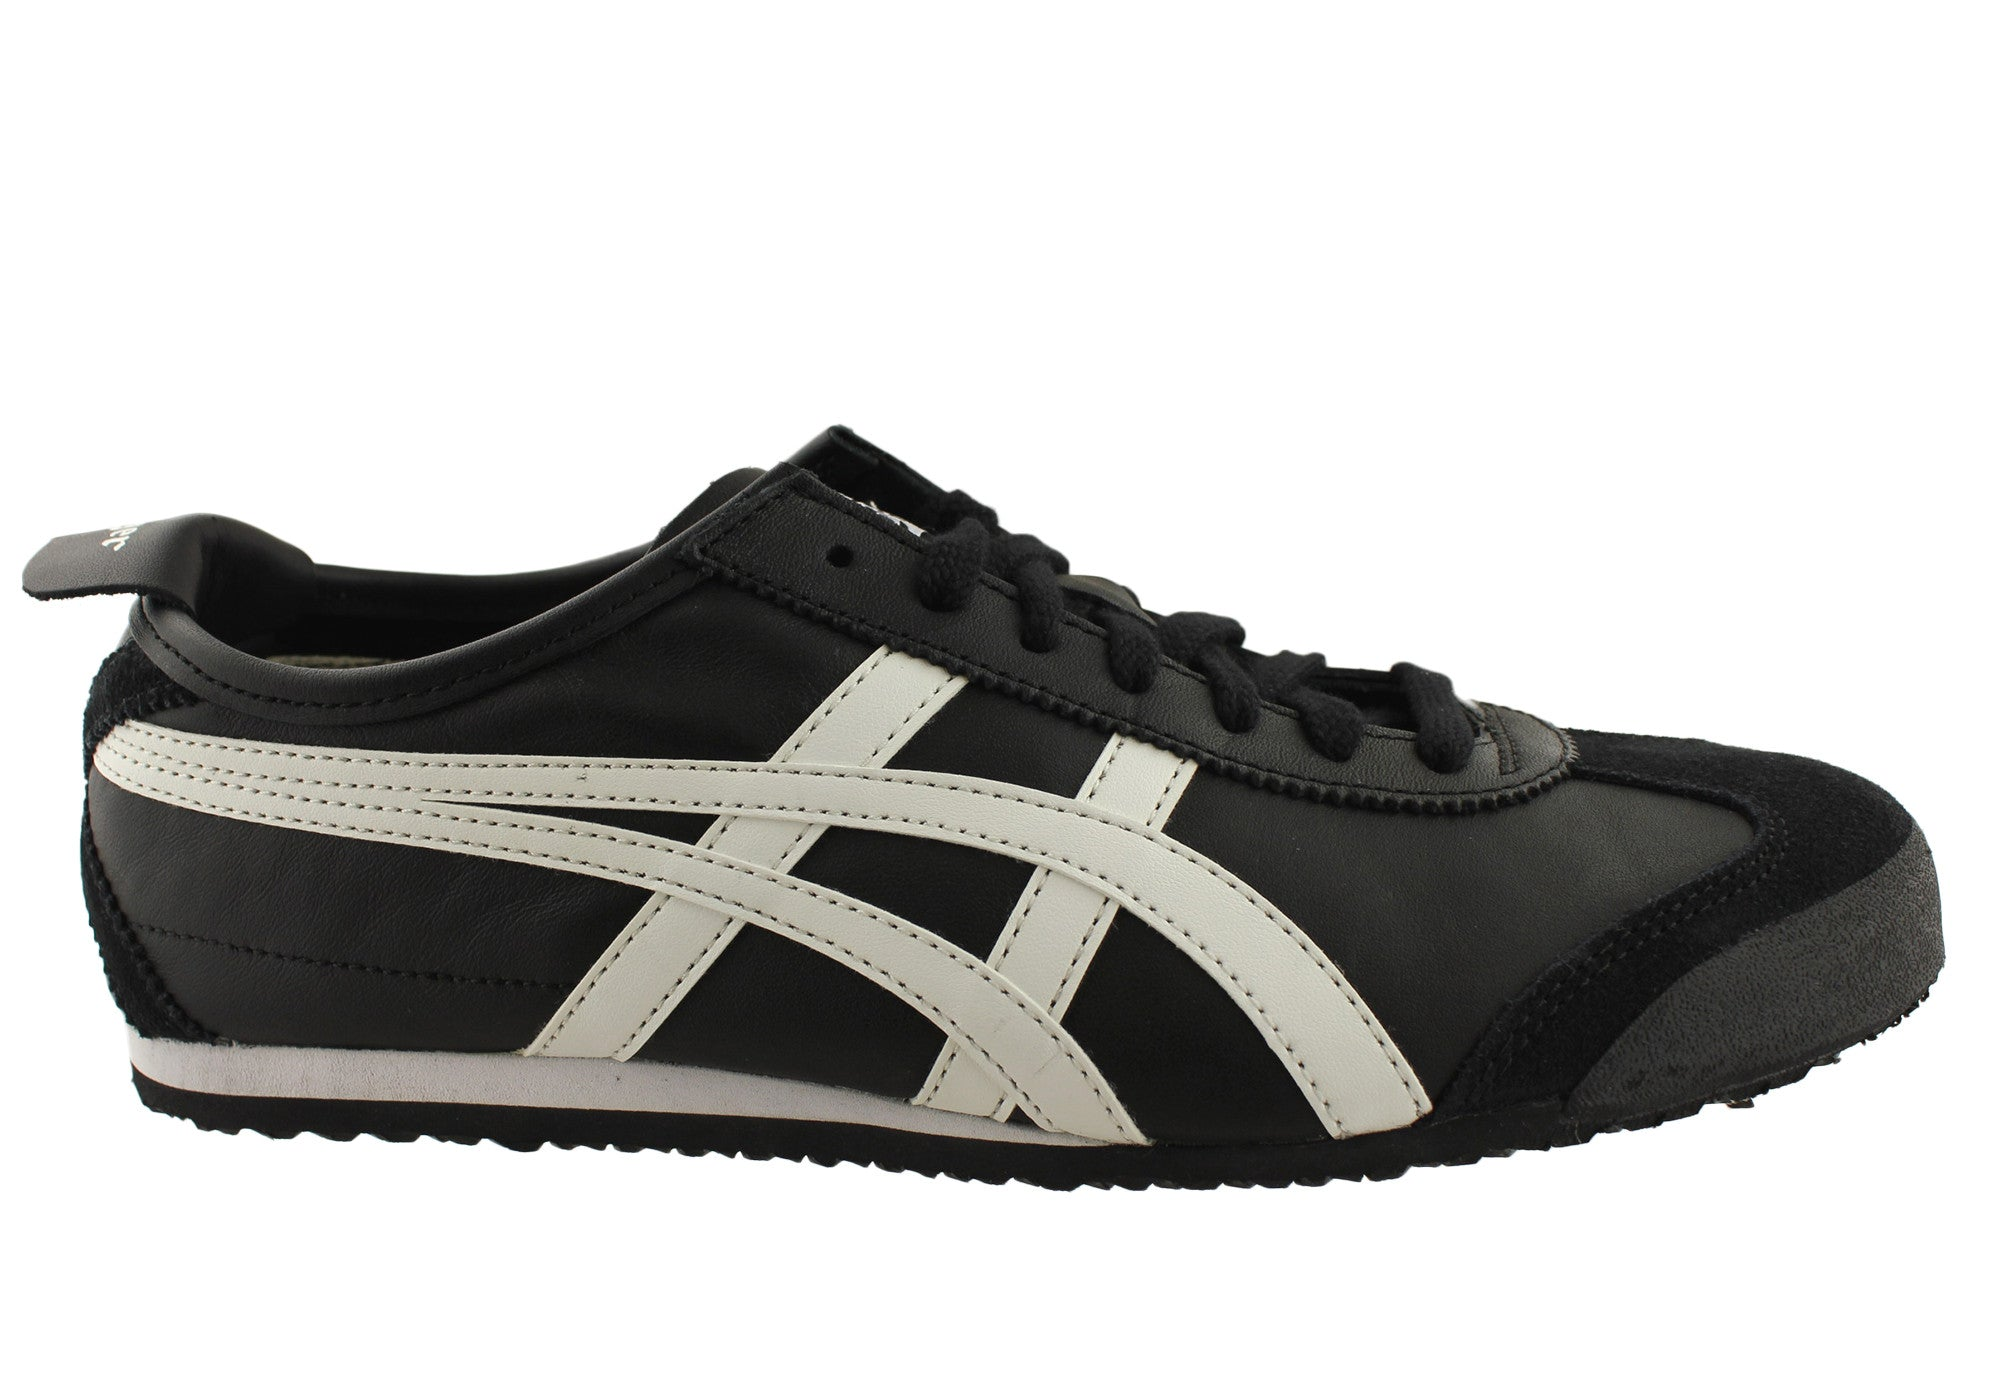 Asics Onitsuka Tiger Mexico 66 Mens Leather Lace Up Casual Shoes | Brand  House Direct